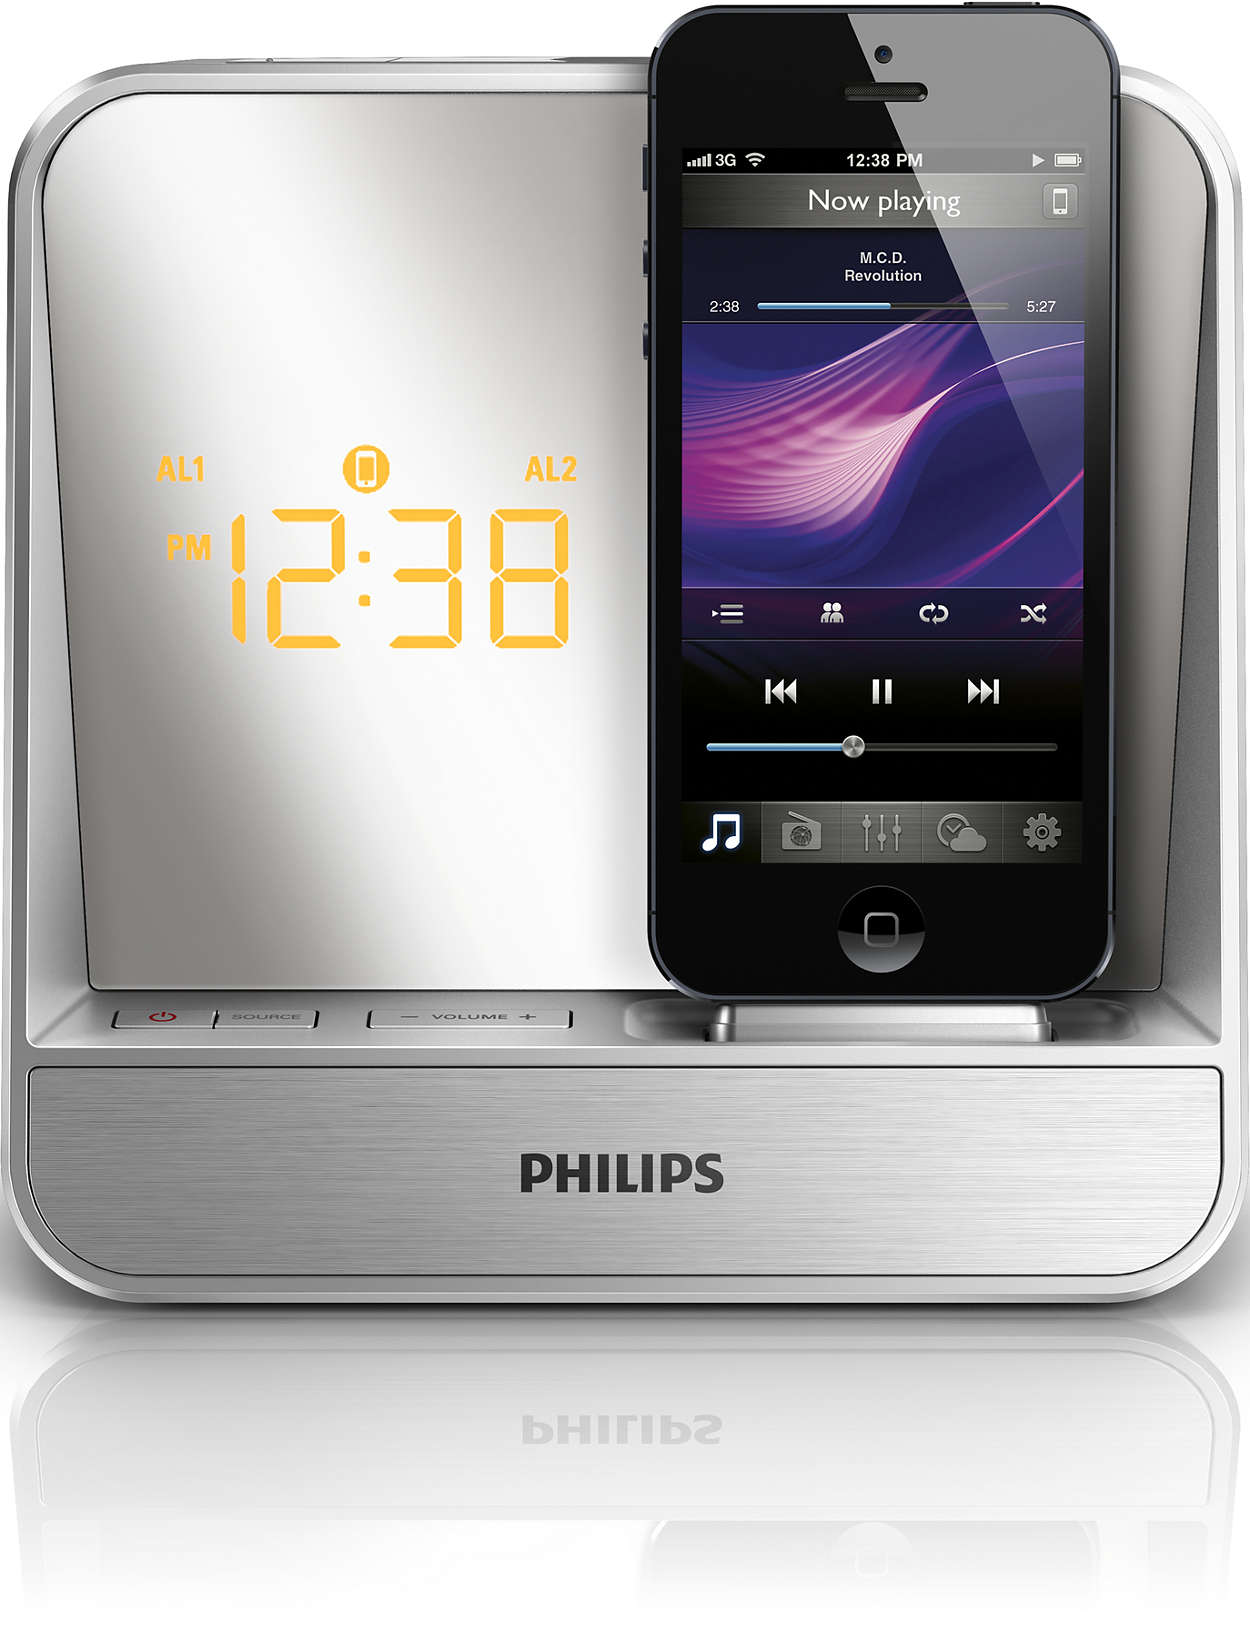 radiowecker f r ipod iphone aj5305d 12 philips. Black Bedroom Furniture Sets. Home Design Ideas